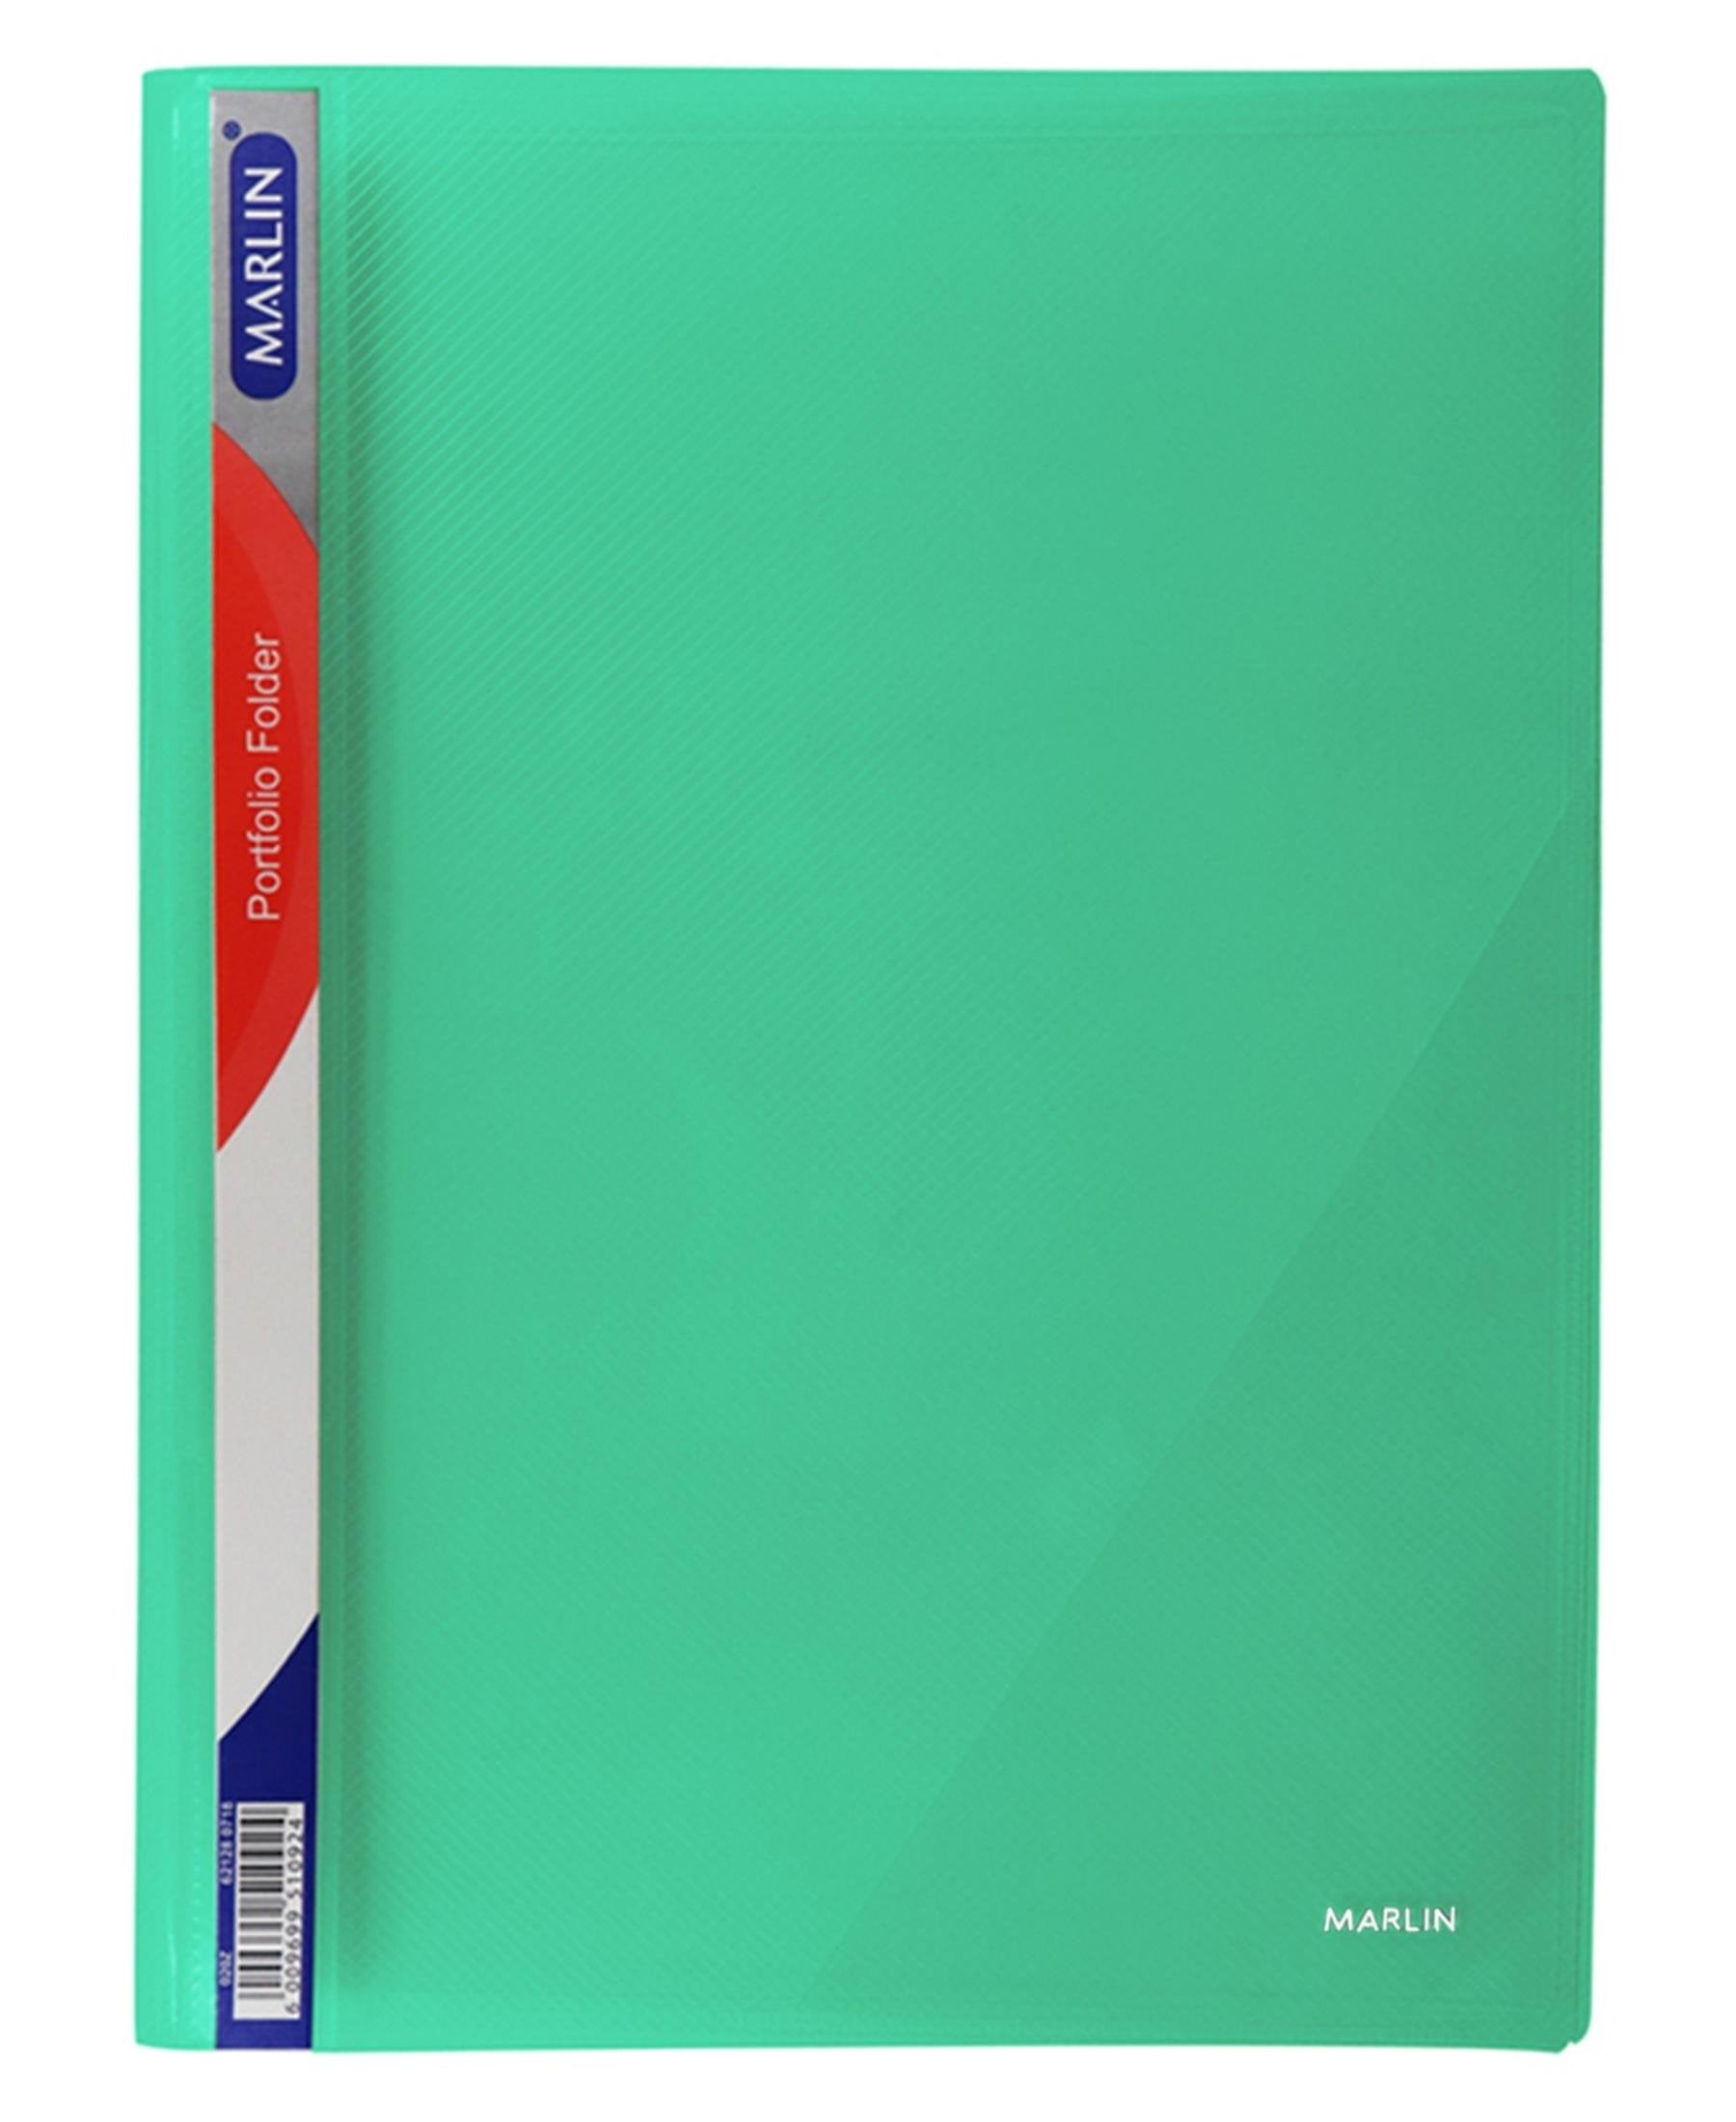 Marlin Portfolio Folder - Green